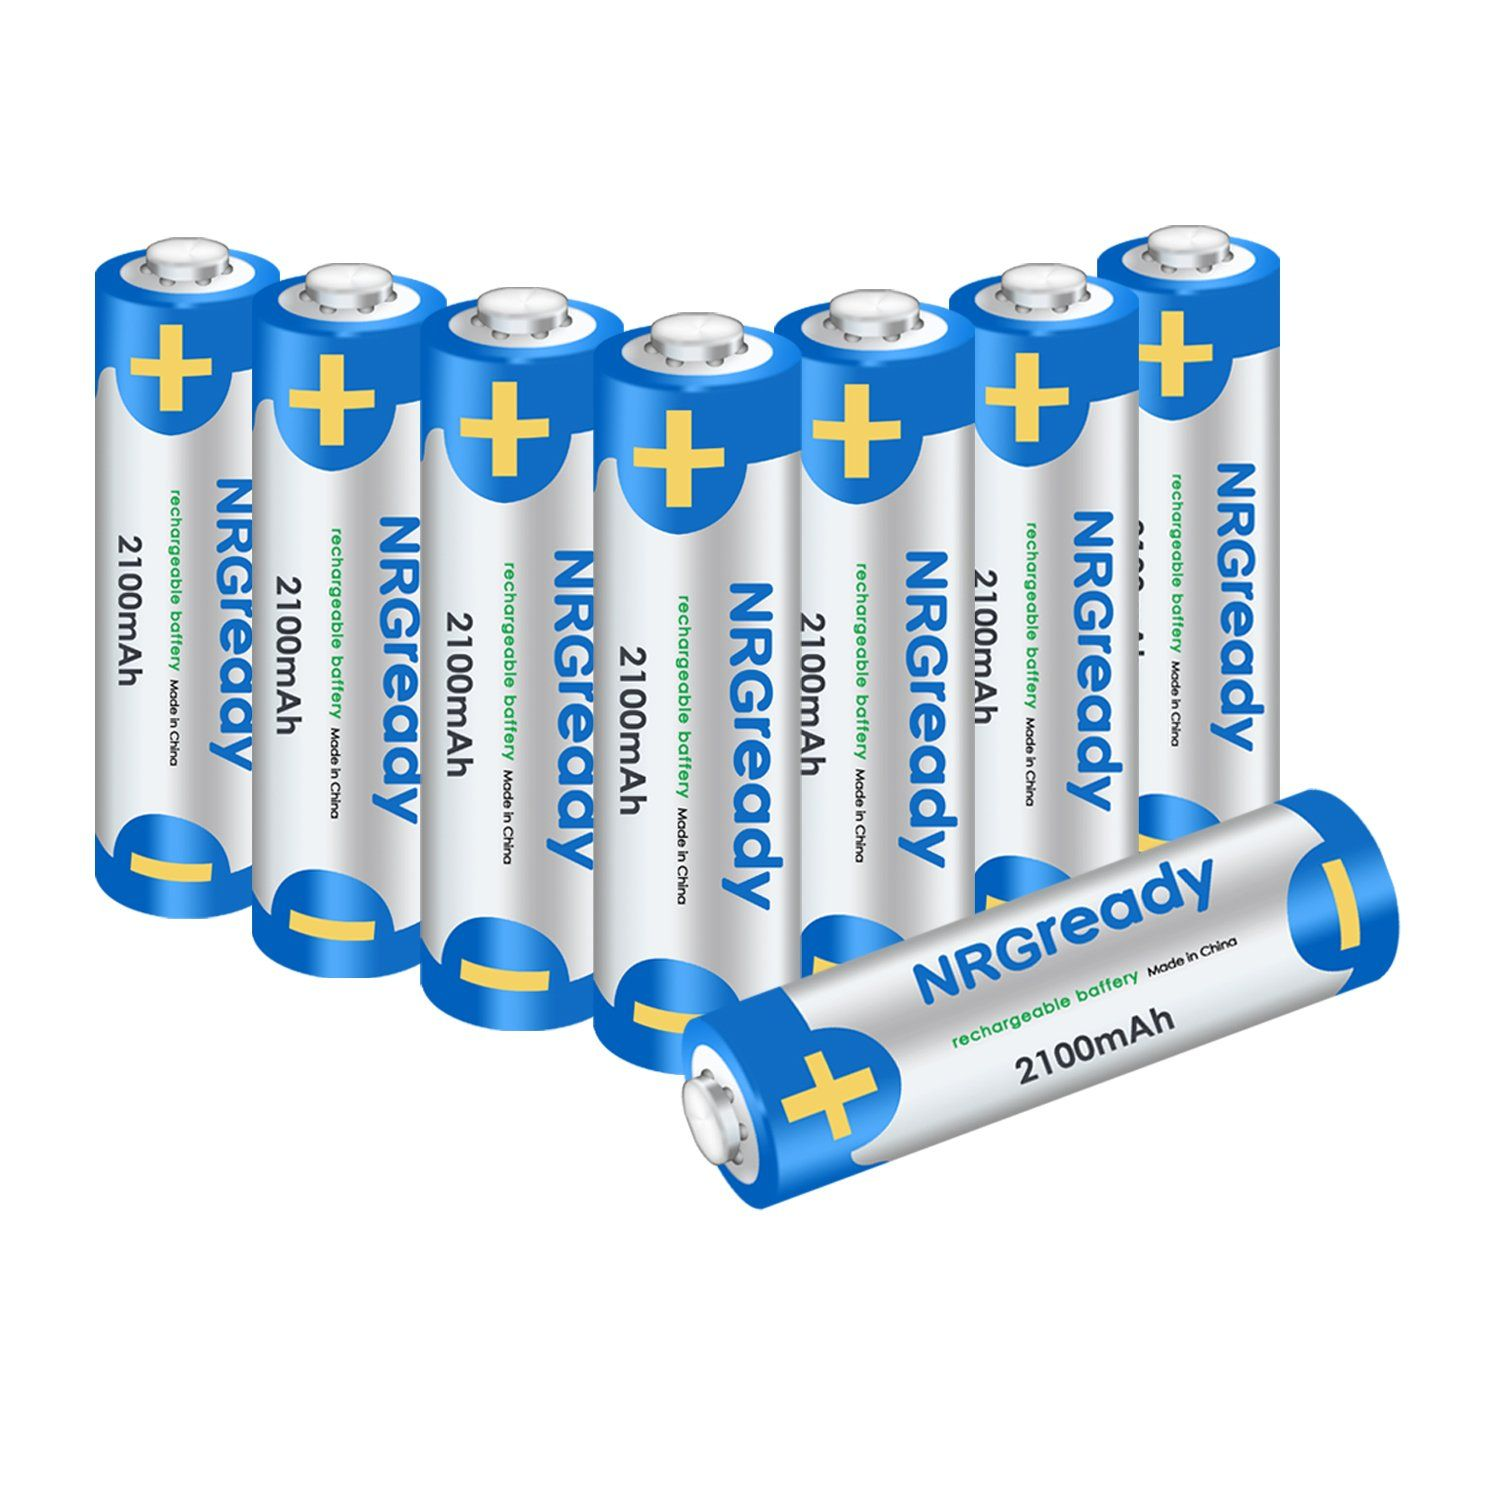 Pile Aa Rechargeable Nrgready Aa 2100mah Rechargeable Batteries High Capacity Ni Mh Pre